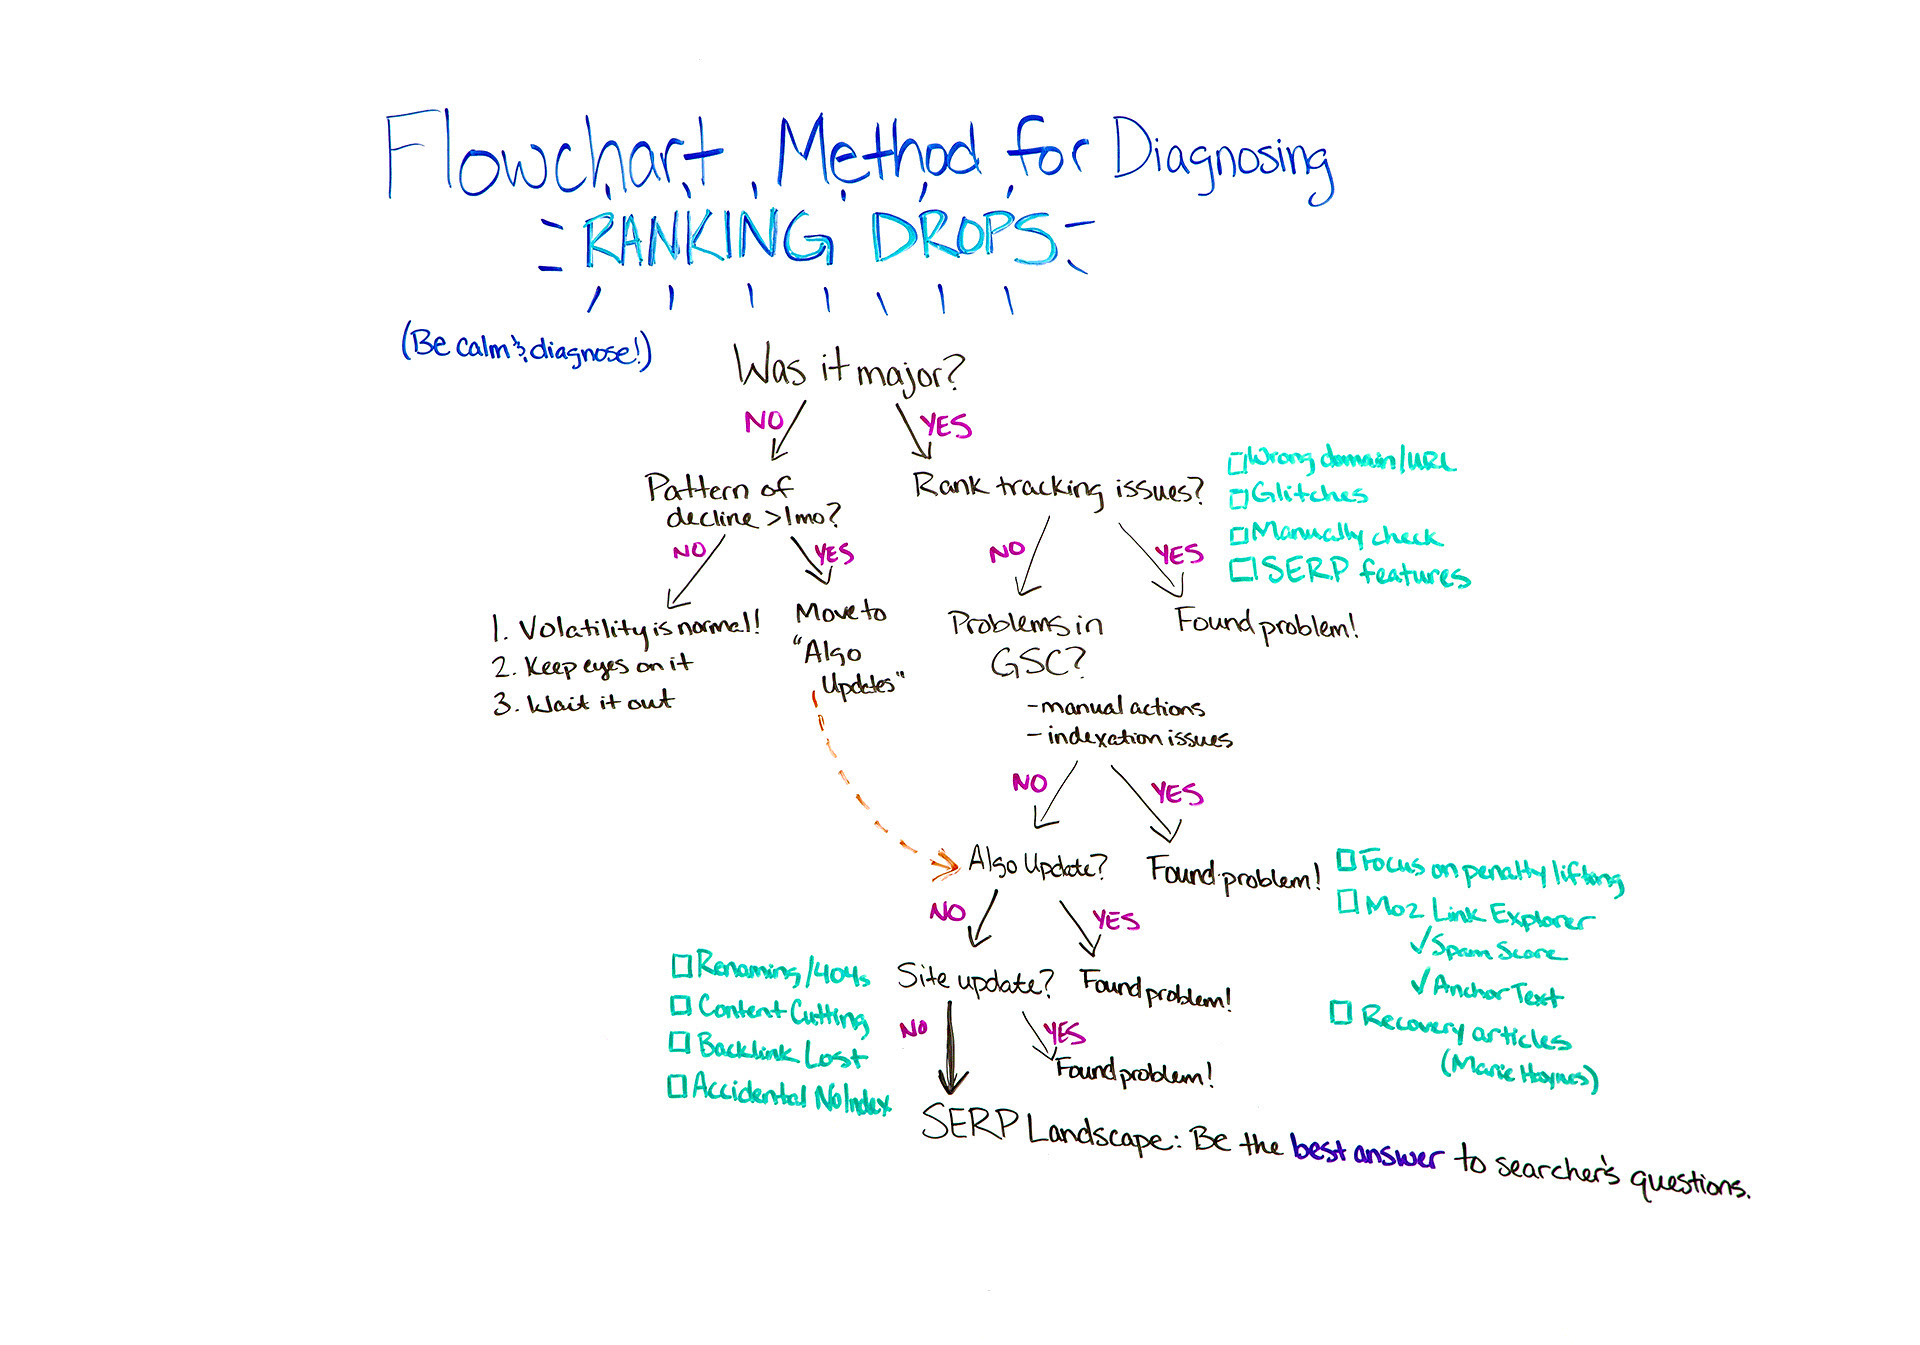 Flowchart method for diagnosing ranking drops